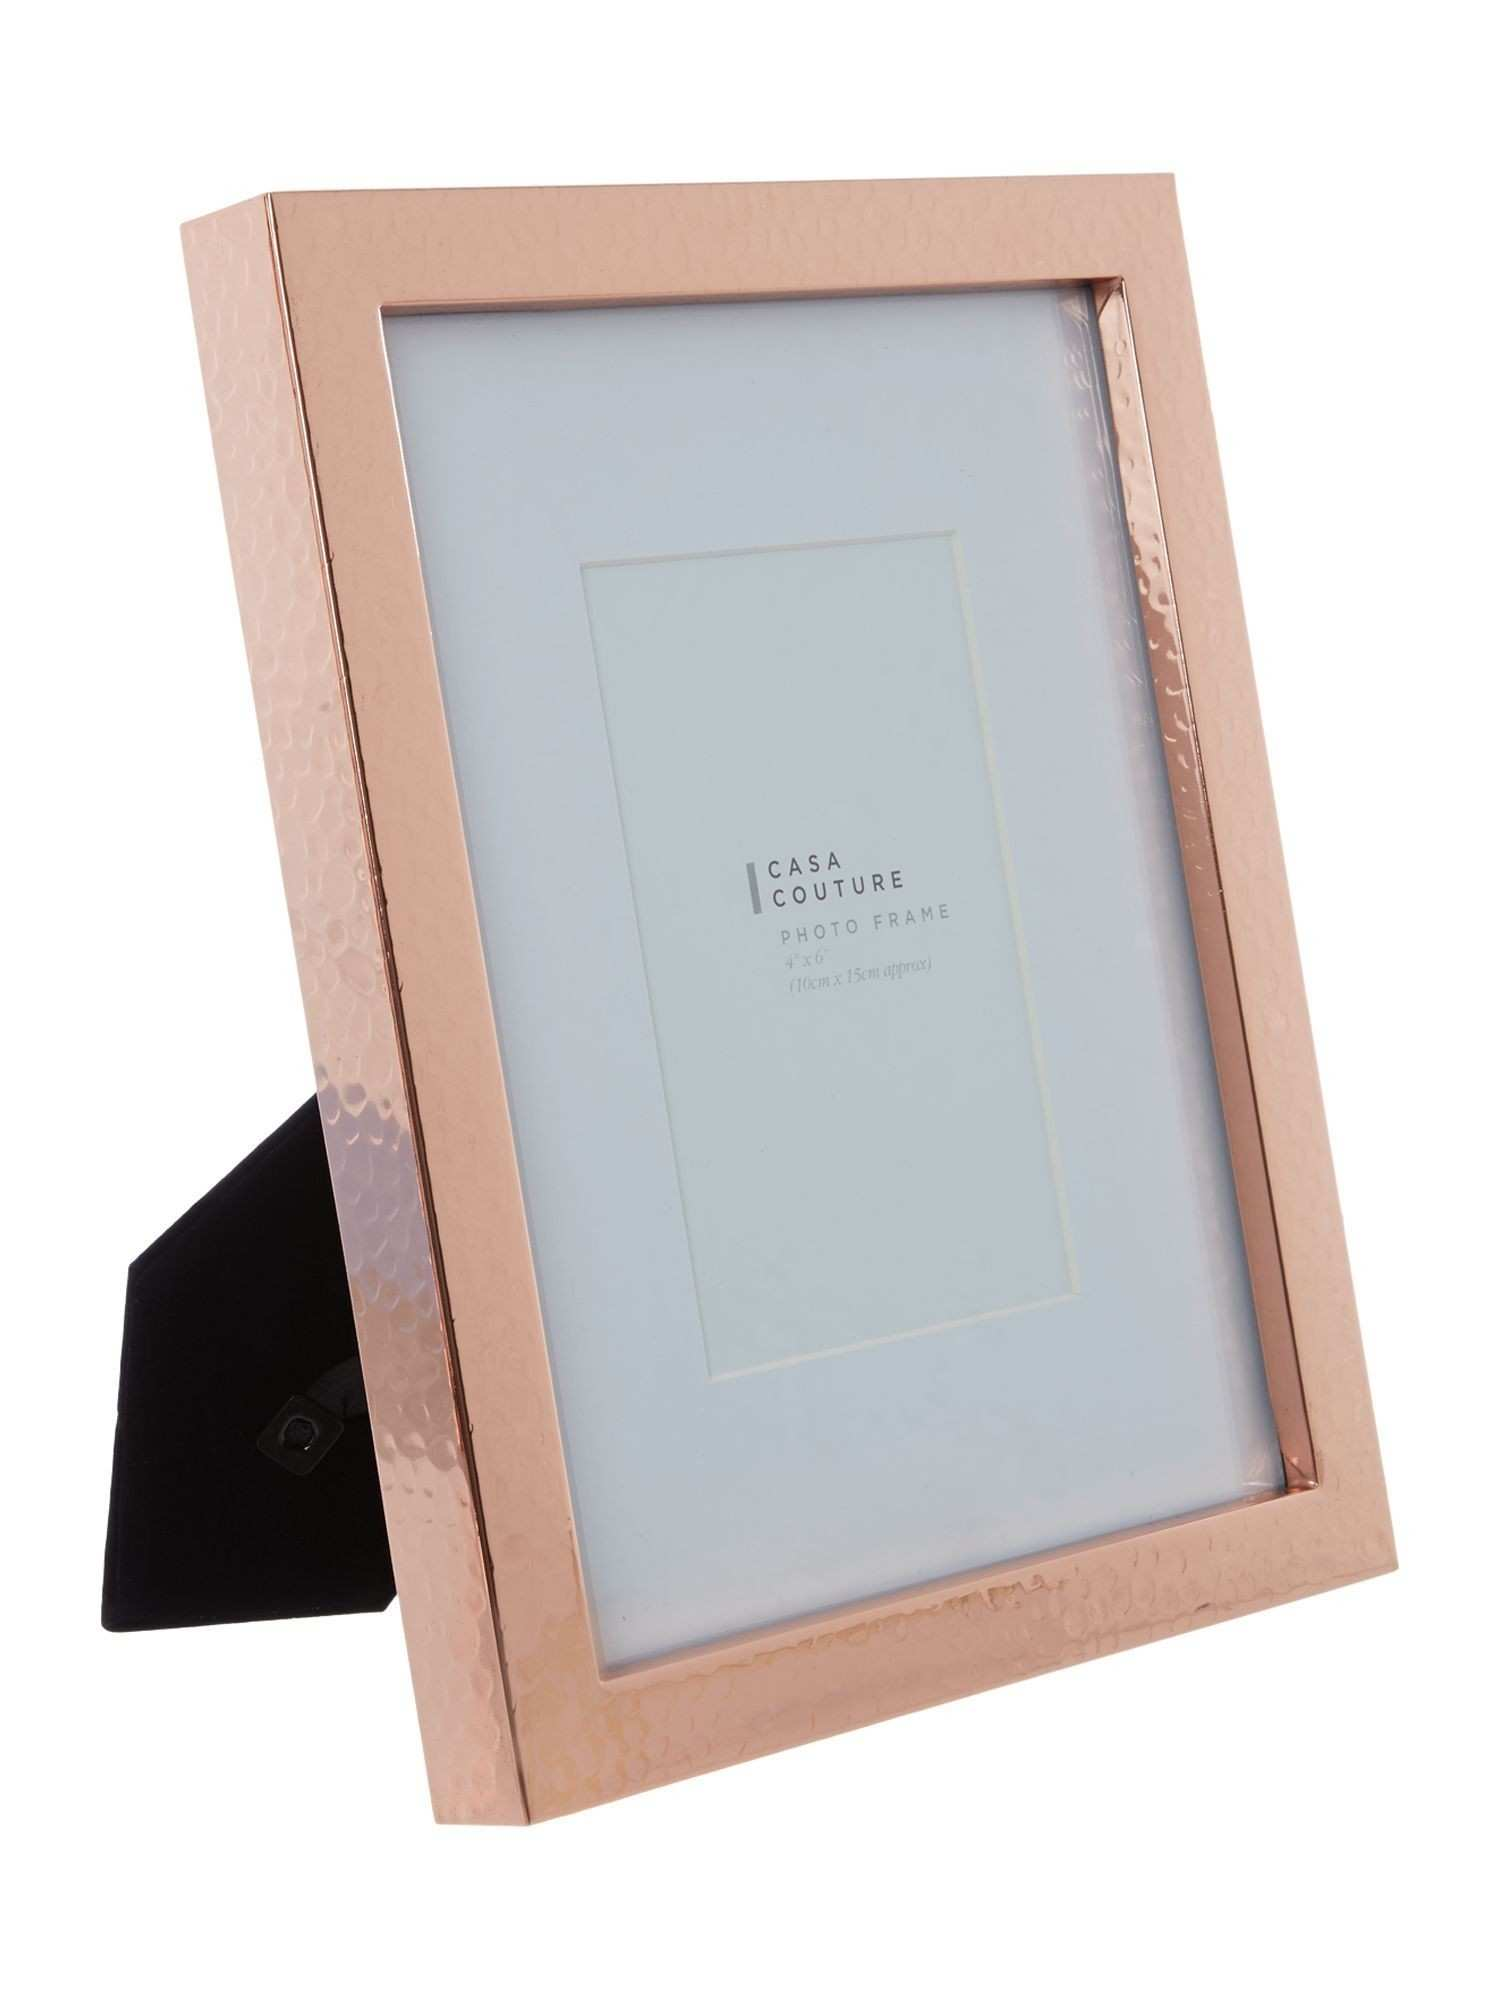 Casa Couture Copper westcroft frame 4x6 from House of Fraser